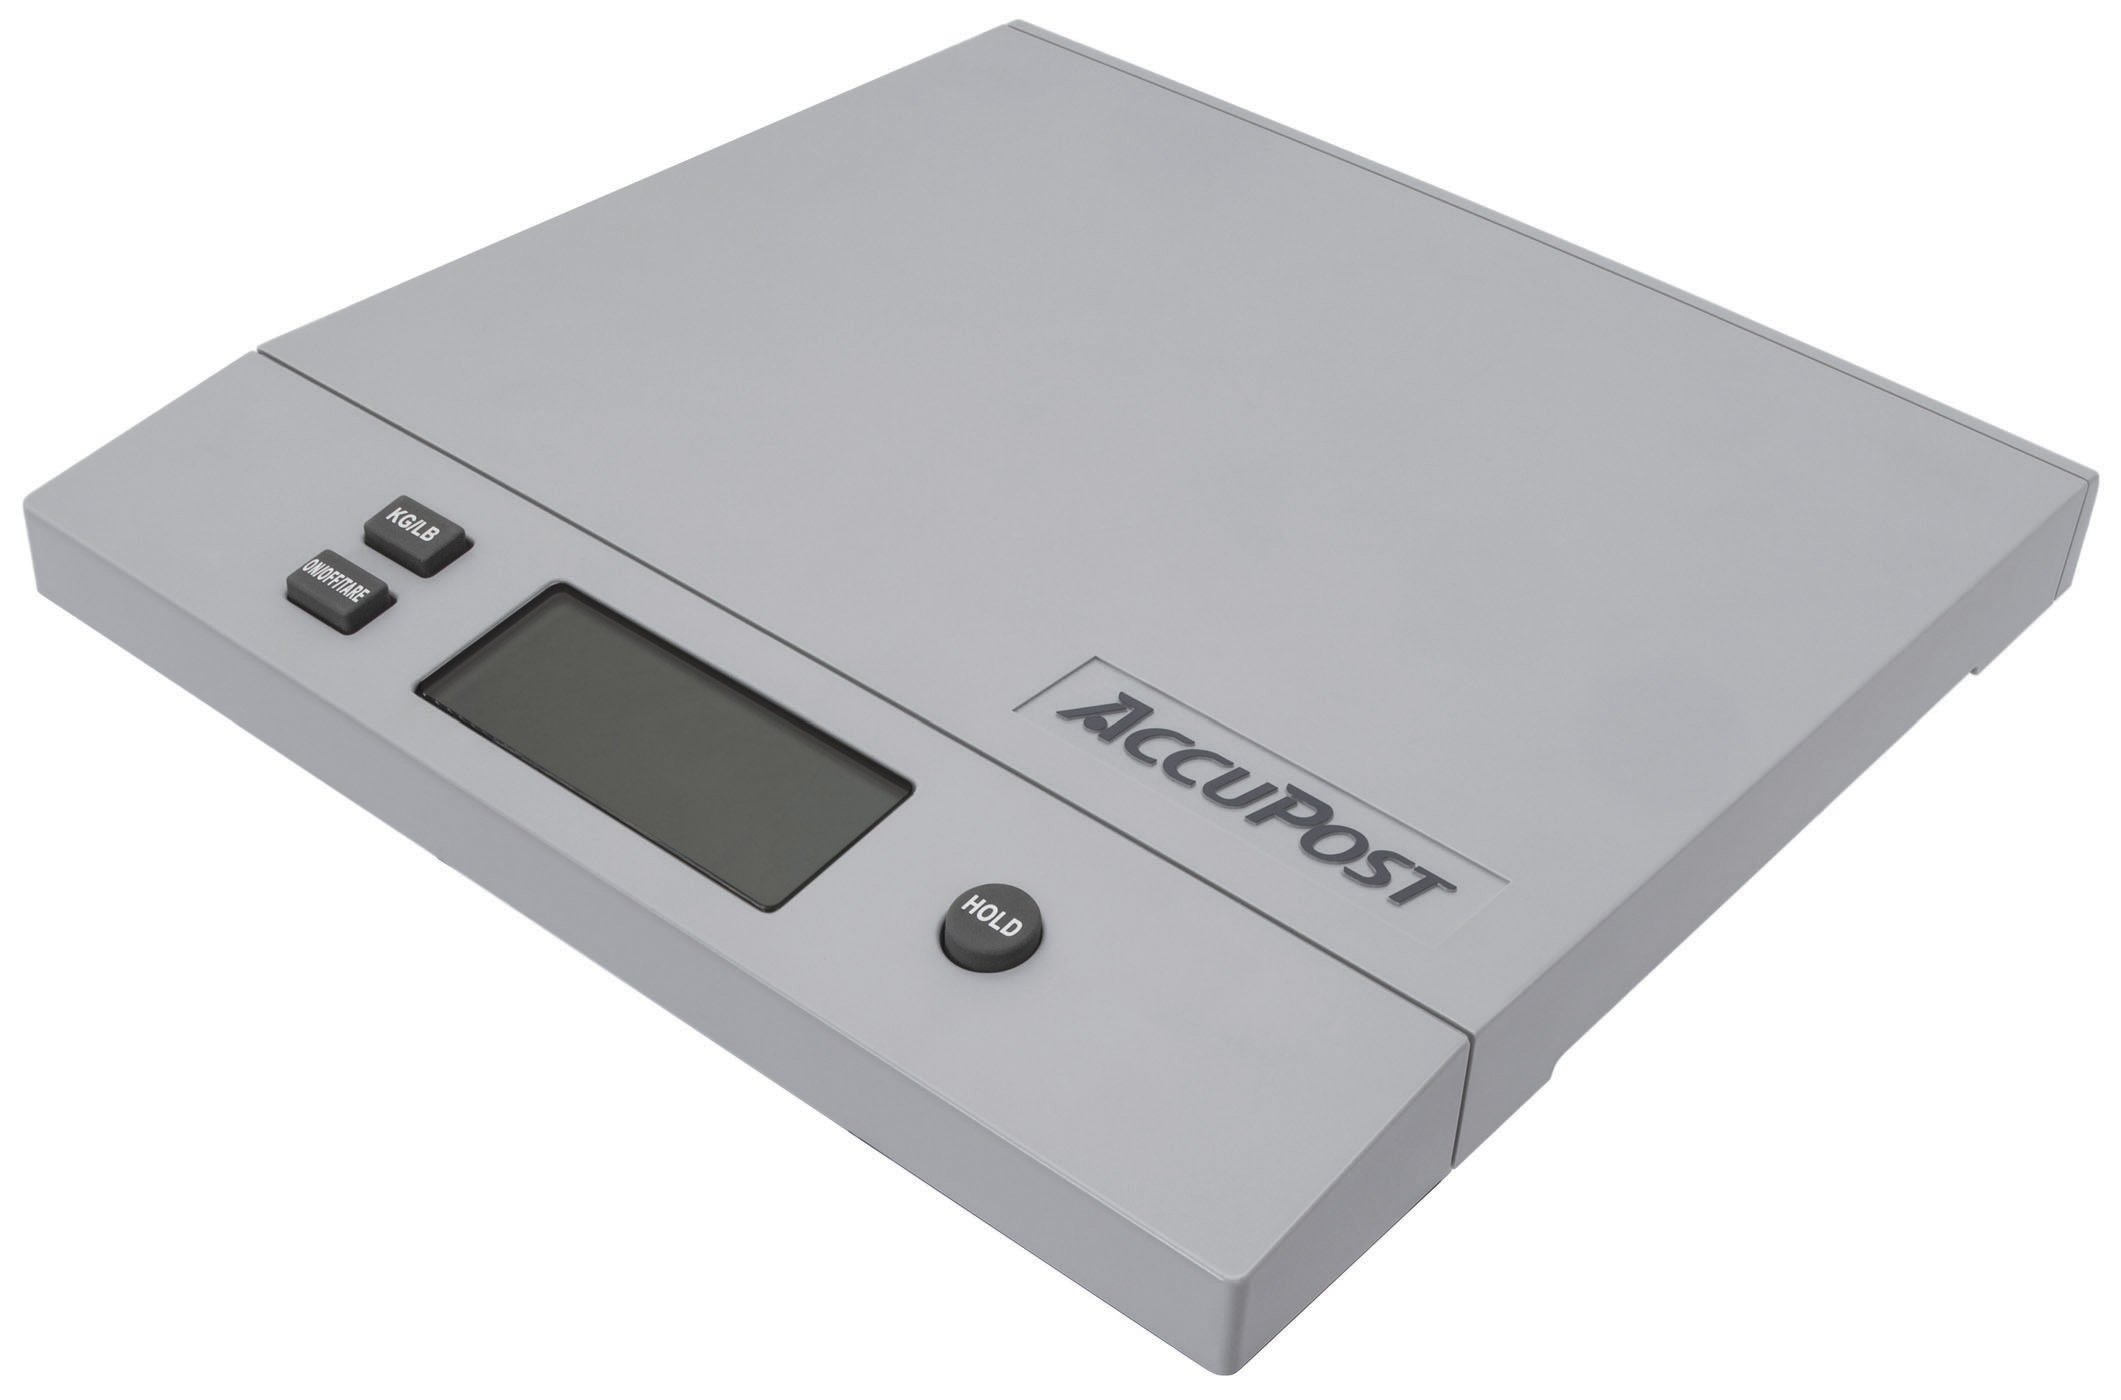 AccuPost PP-70N Postal Scale with USB Port - 70 lb. Load Capacity